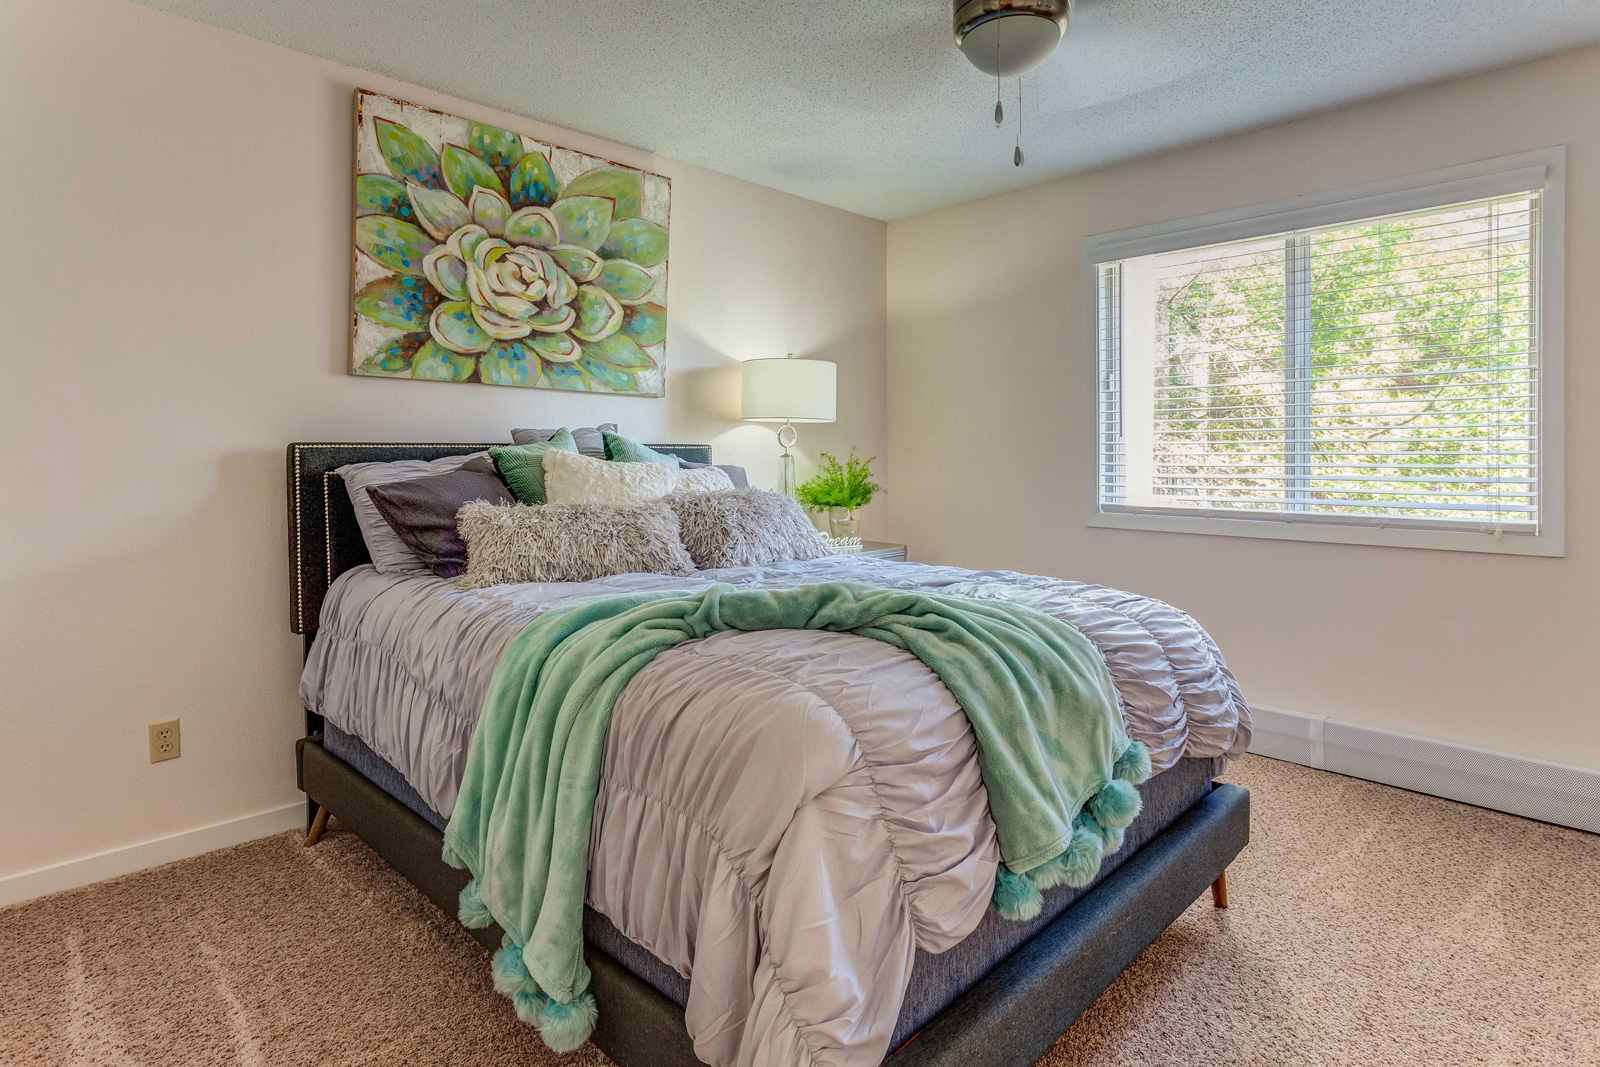 Carriage Oaks spacious bedroom with bed and green and grey decor.